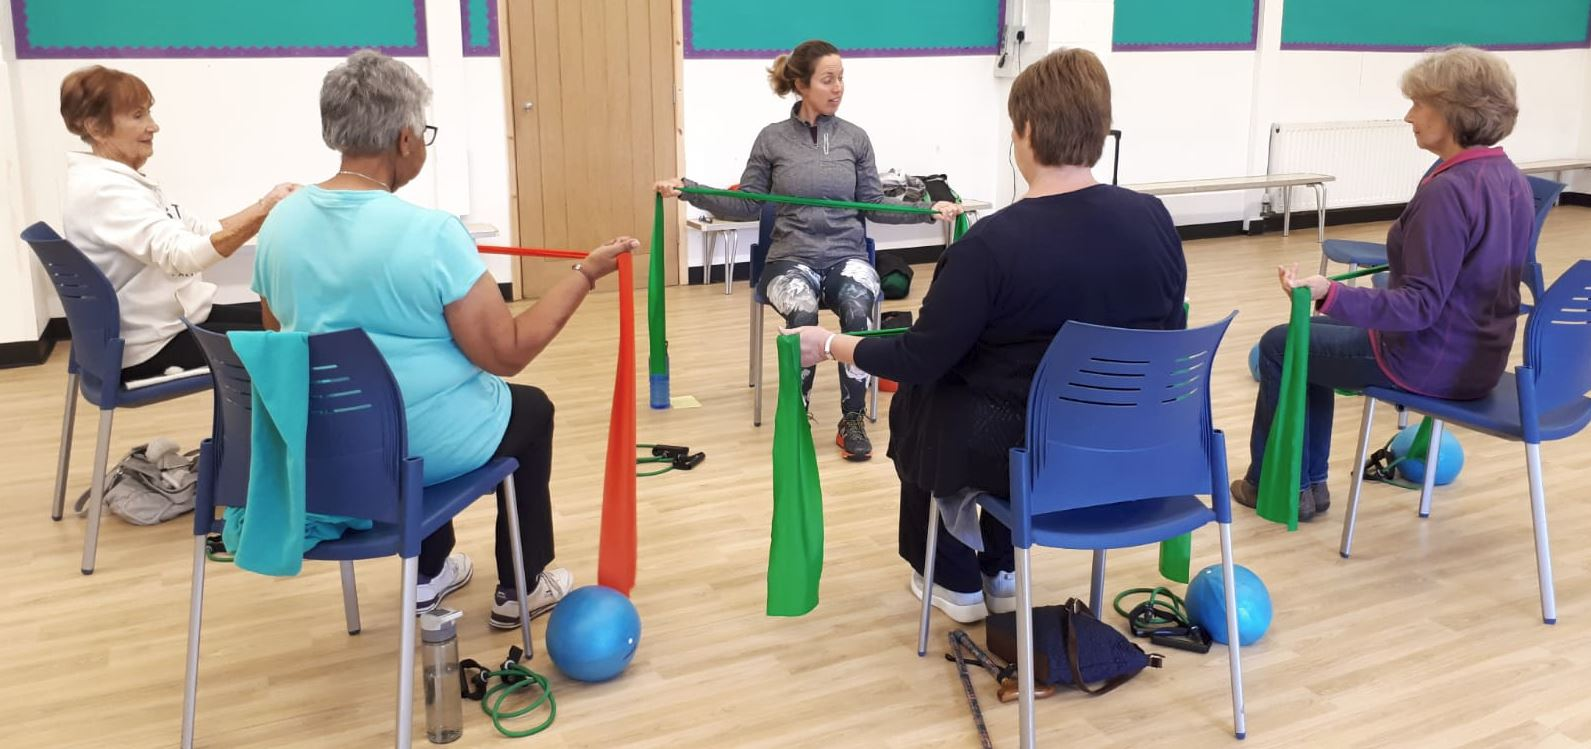 Folkestone Seated Exercise Classes taught by Jane Mackenzie